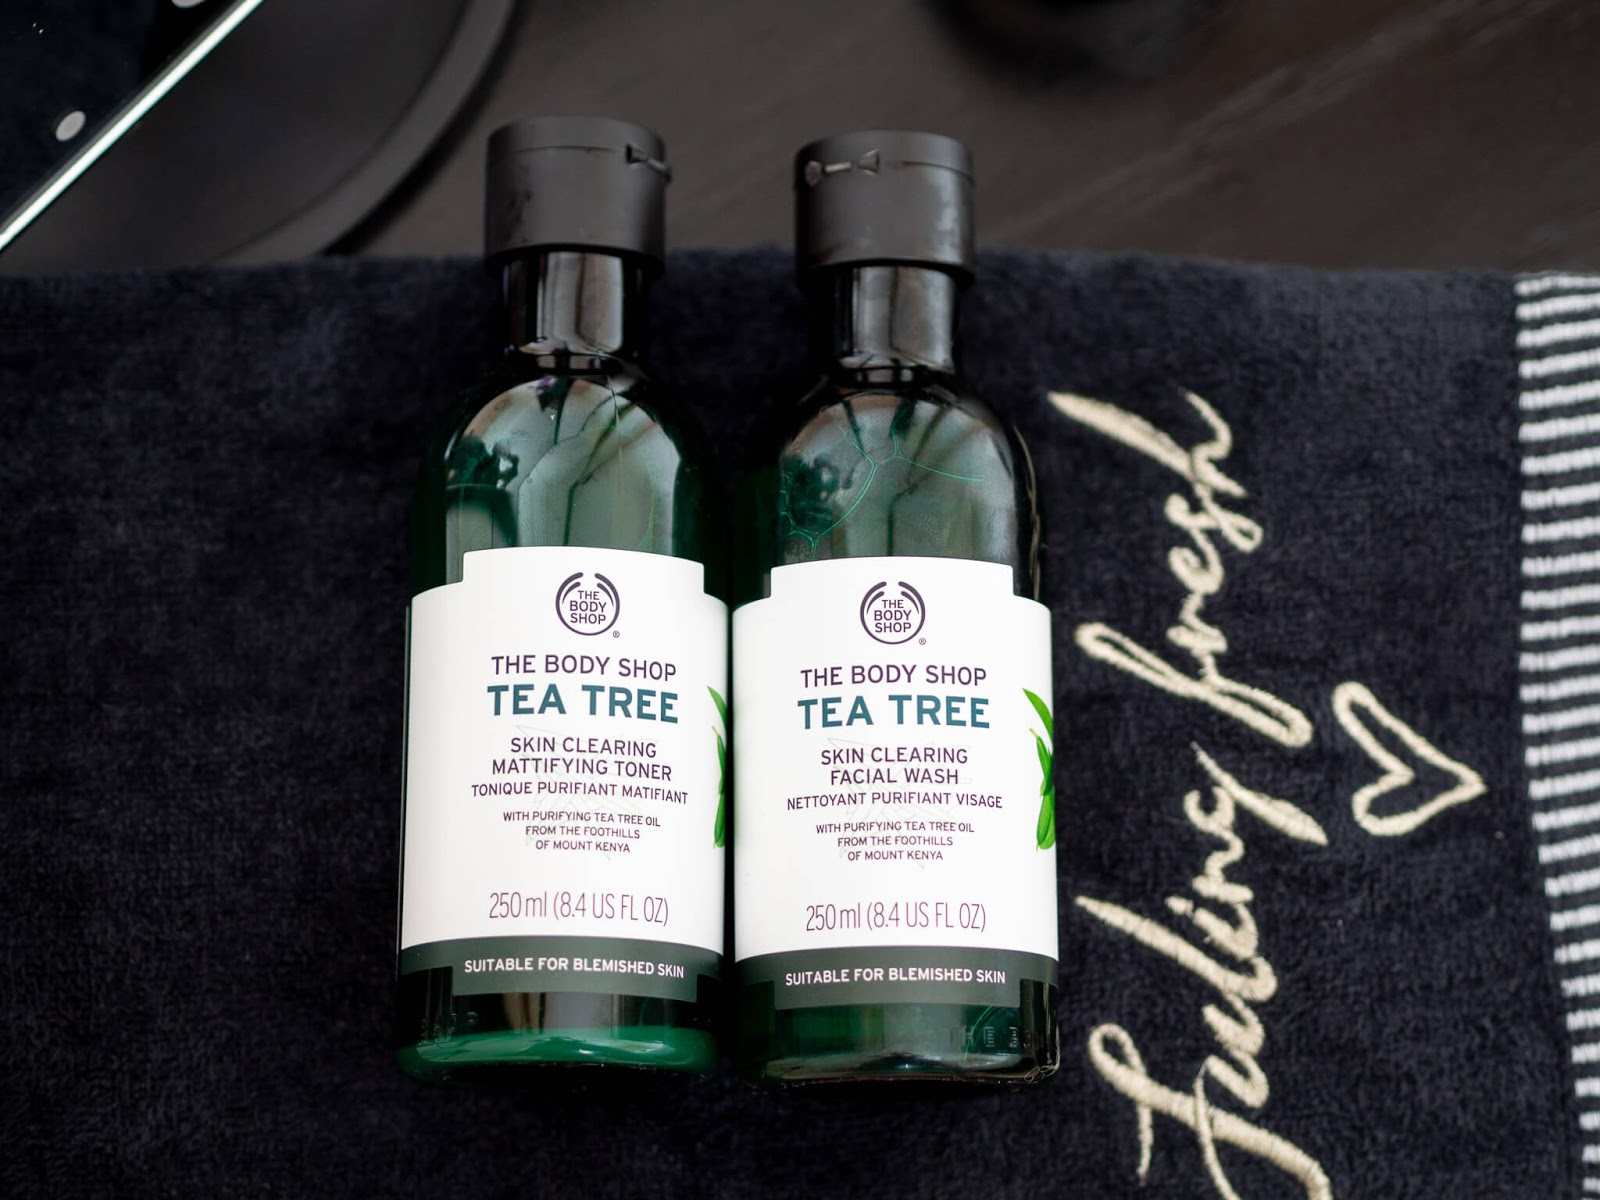 The Body Shop Tea Tree review